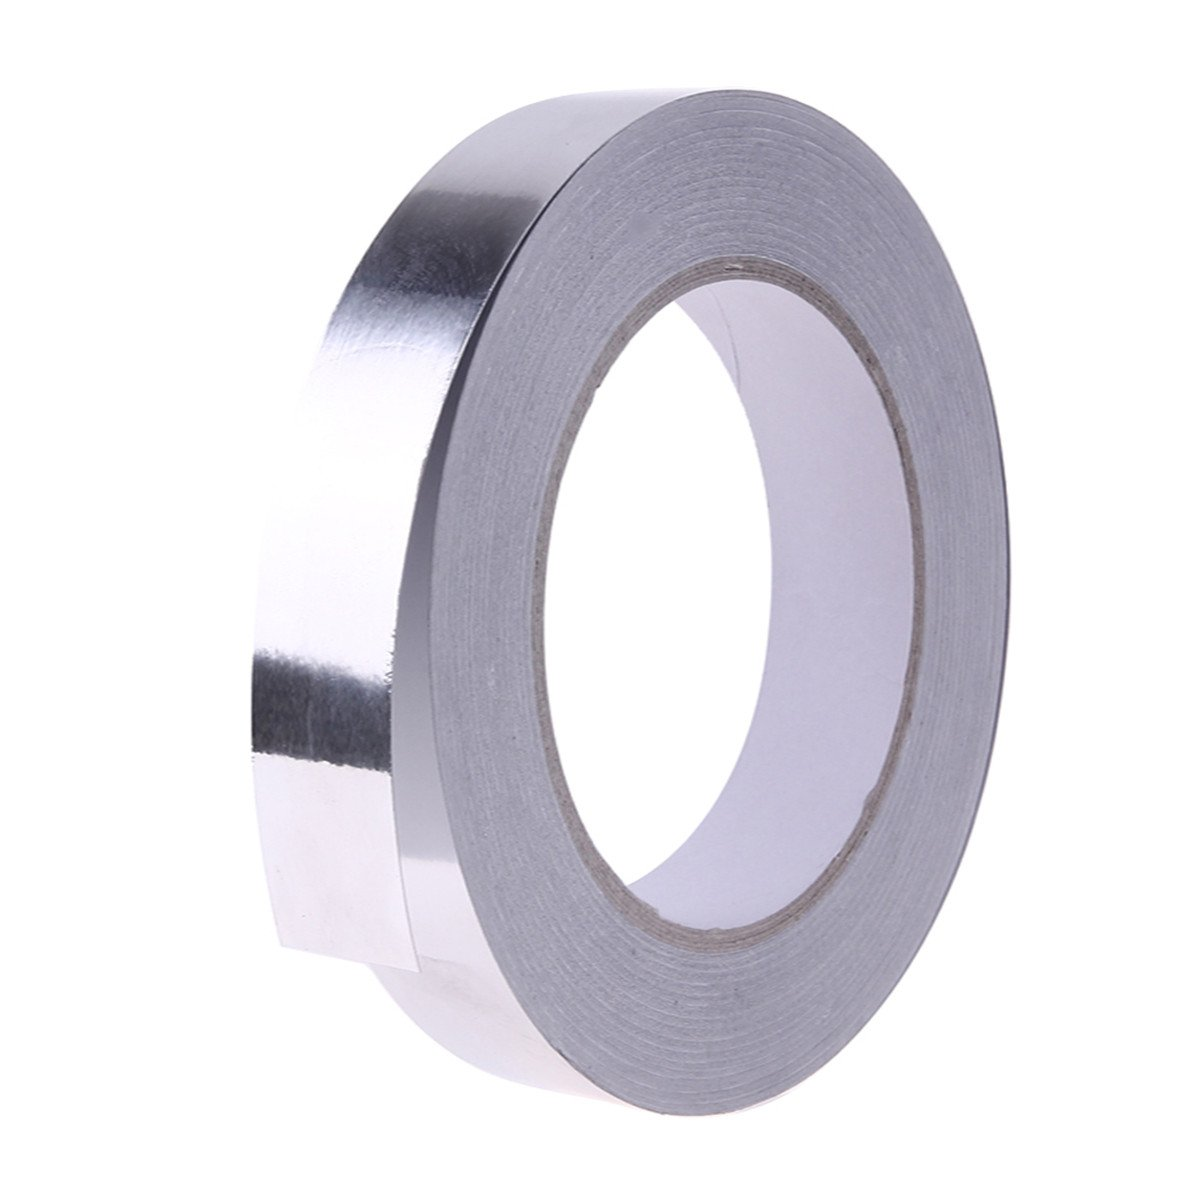 Silver Aluminium Foil Adhesive Sealing Tape for HVAC Repair, Ducts, Insulation, Dryers,10mm x 30m TM E41001032